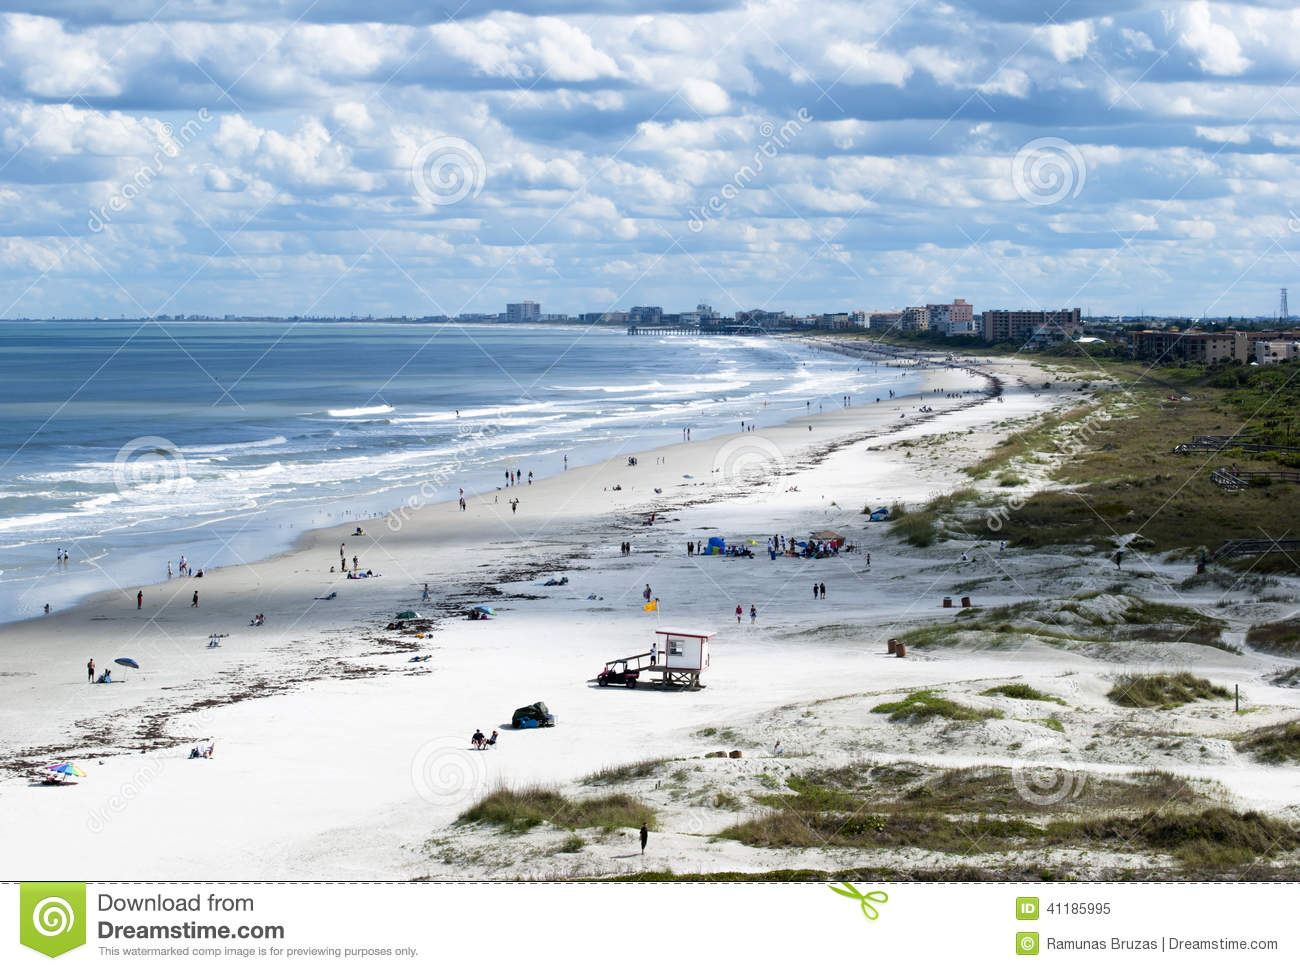 hindu single men in cape canaveral Cocoa beach-cape canaveral fl demographics data with population from census shown with charts, graphs and text includes hispanic, race.